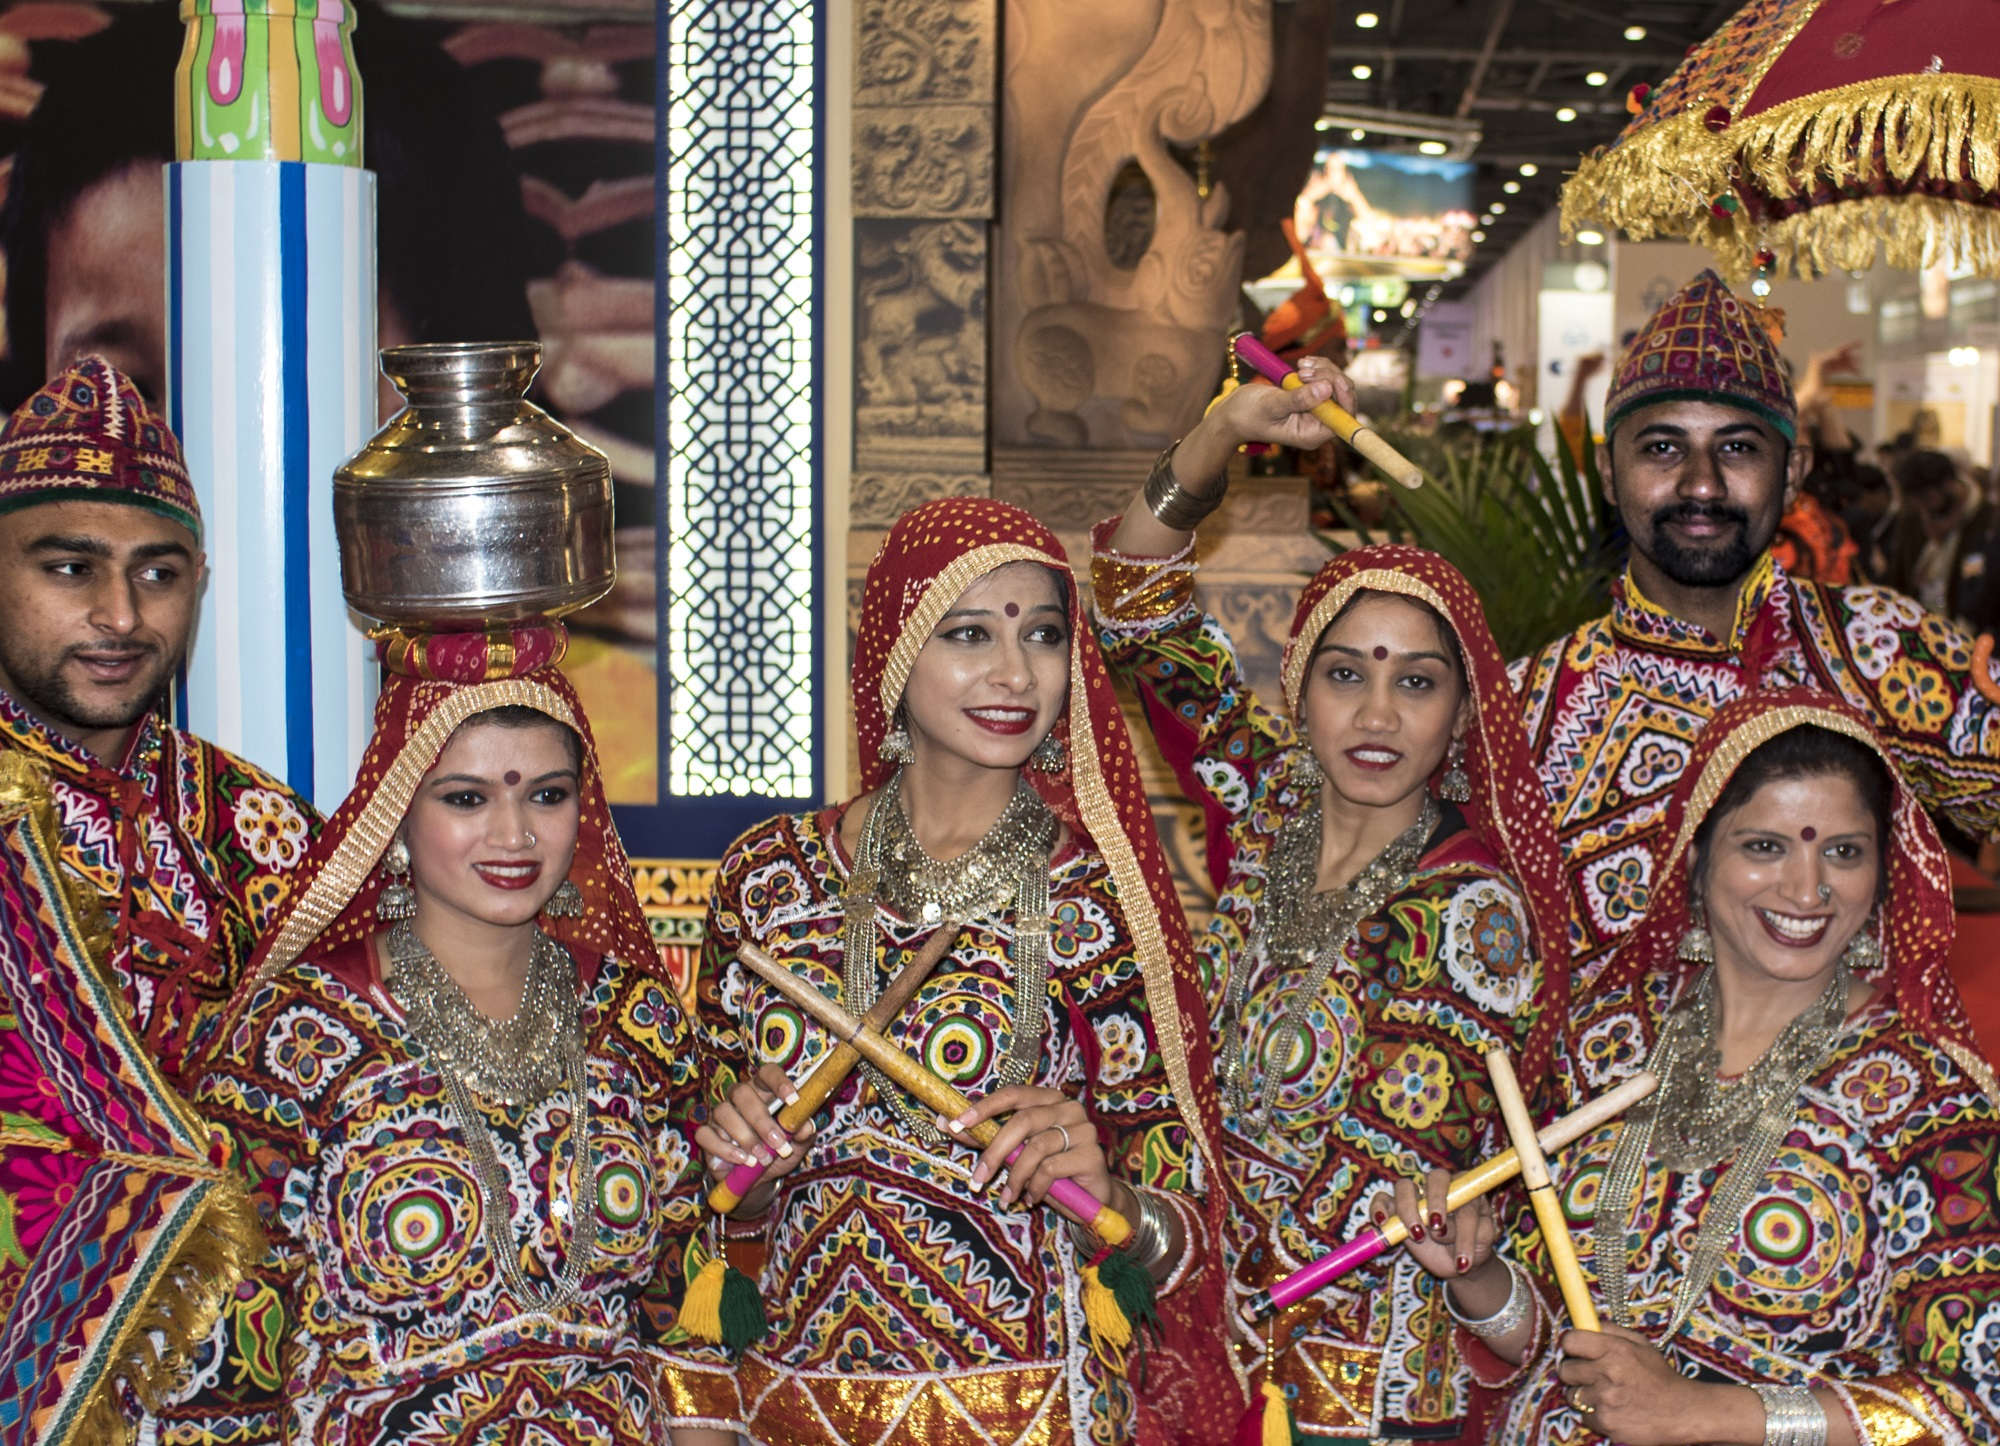 Eine Gruppe Leute auf dem World Travel Market in bunten traditionellen Outfits